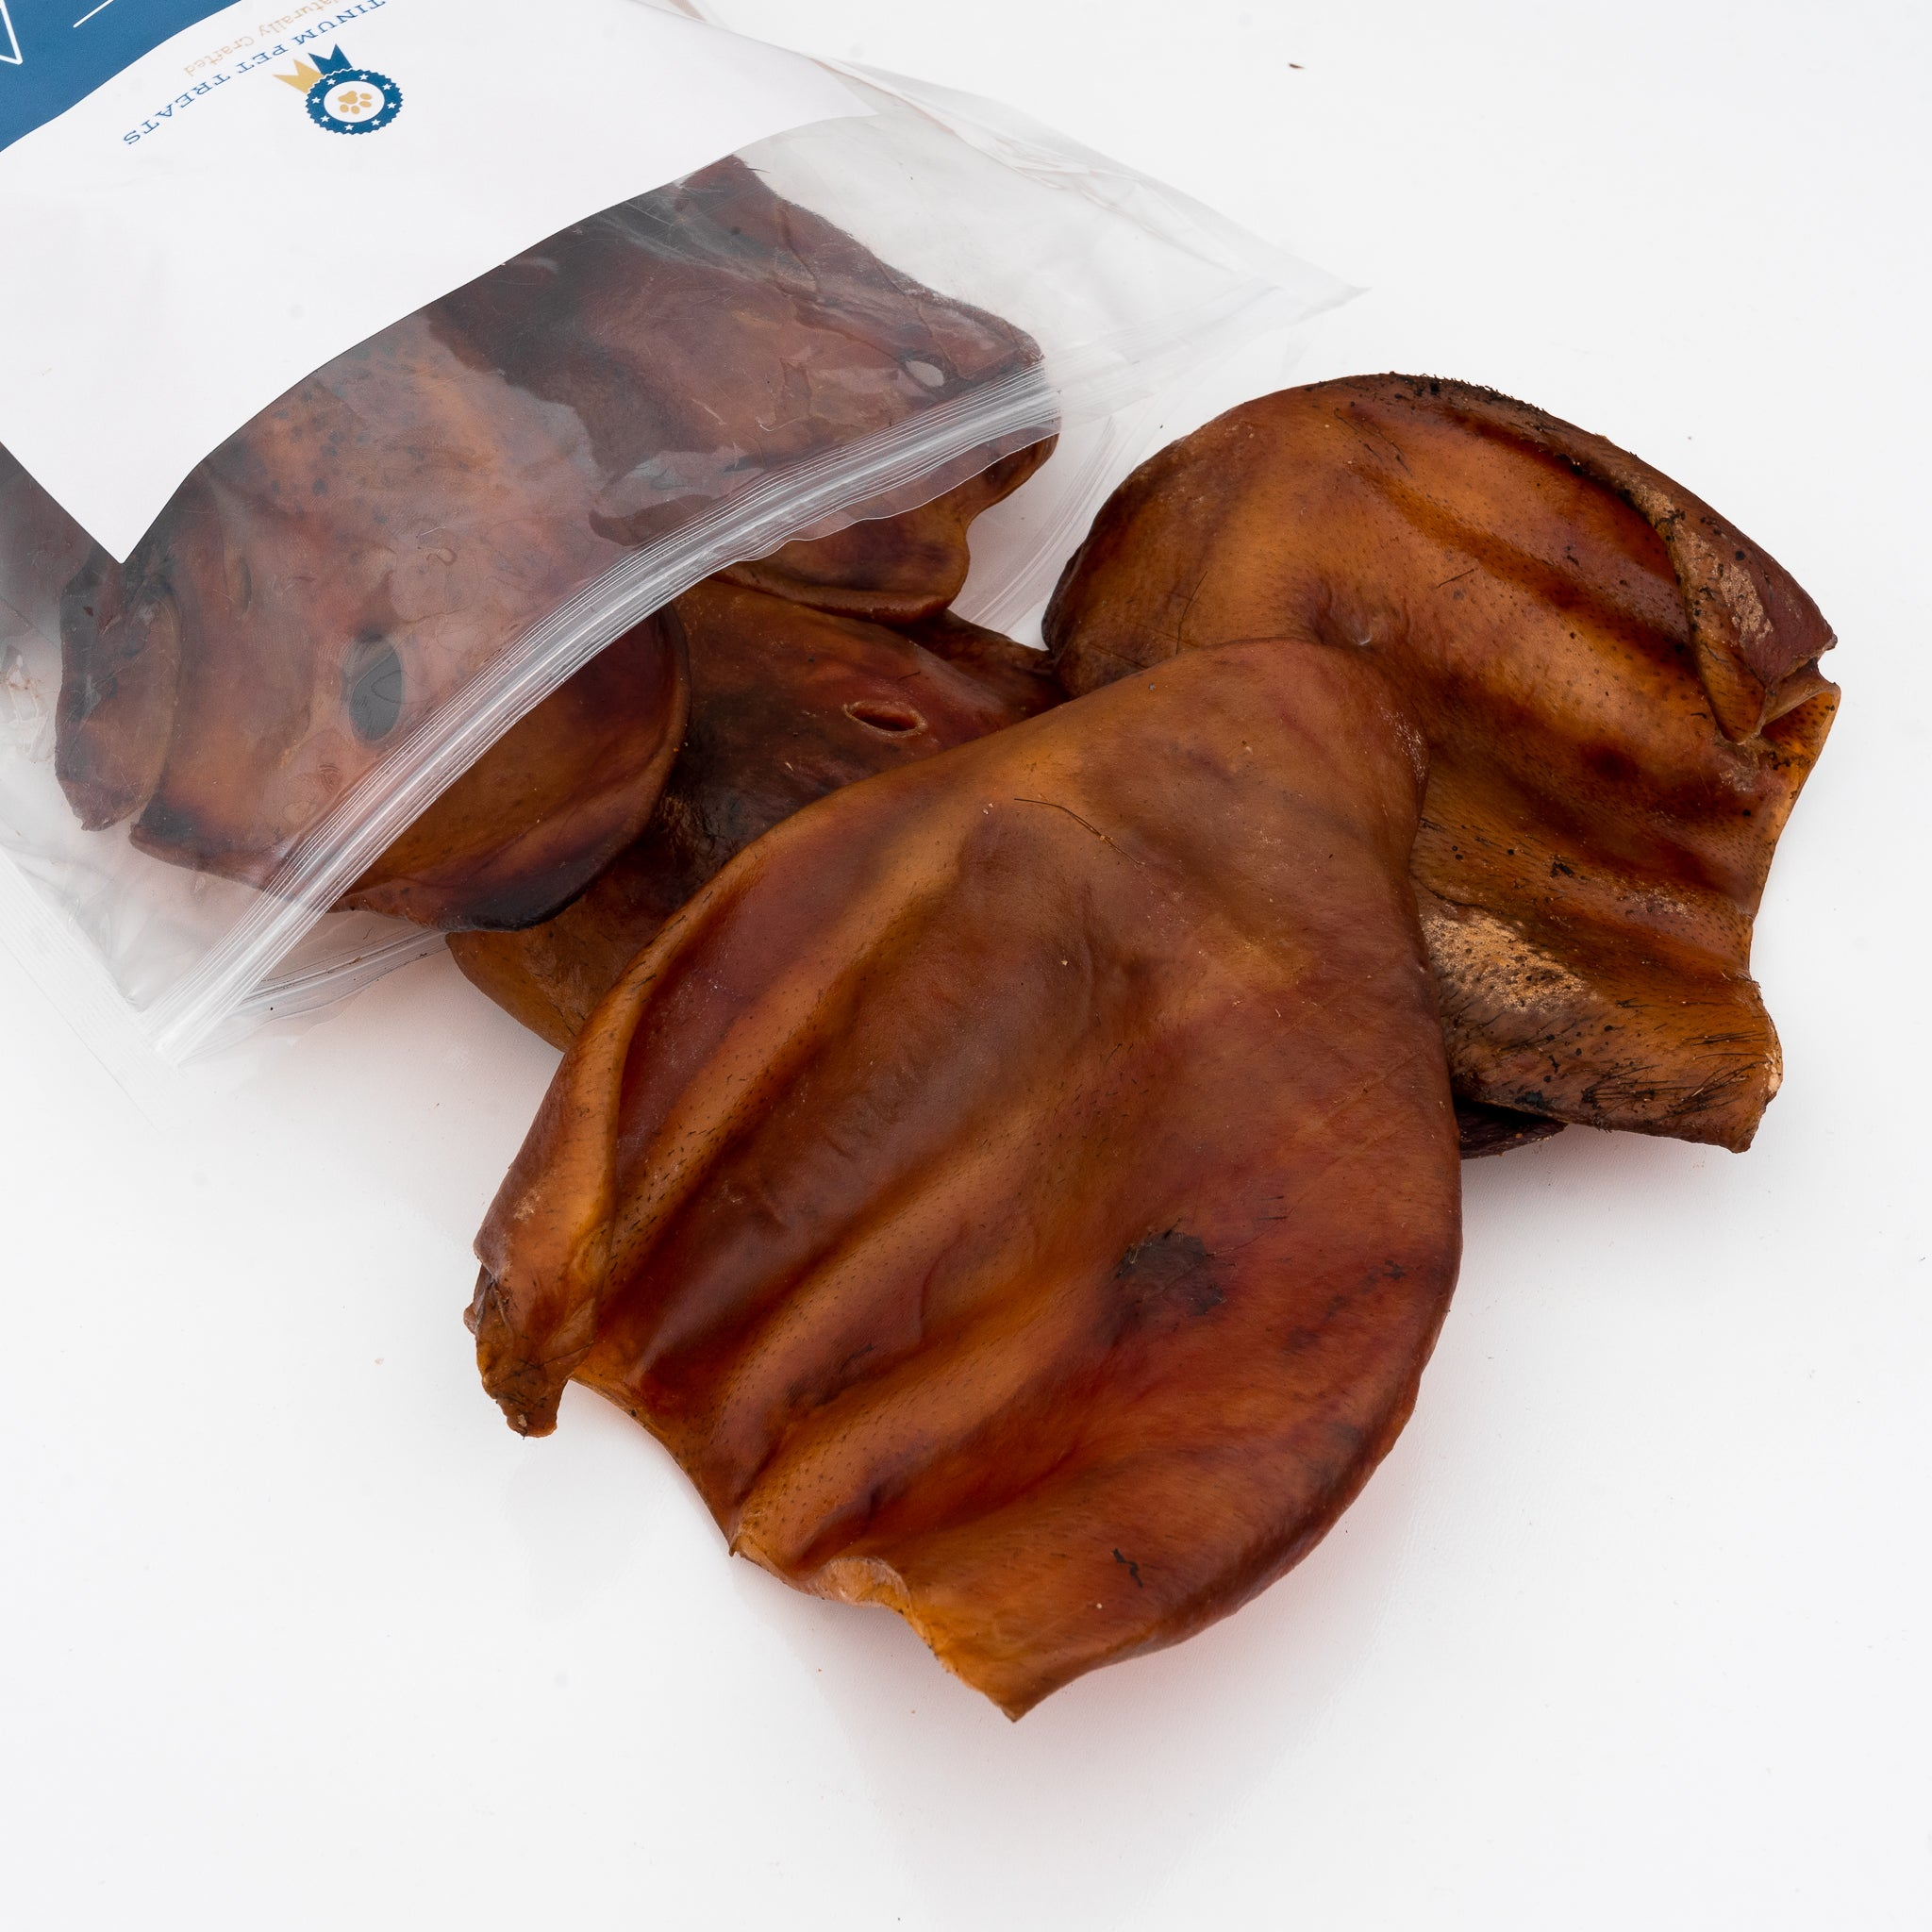 Whole Pig Ears 10,25,50 Pack | Tasty, Long Lasting, Single Ingredient, All-Natural Dog Chews |